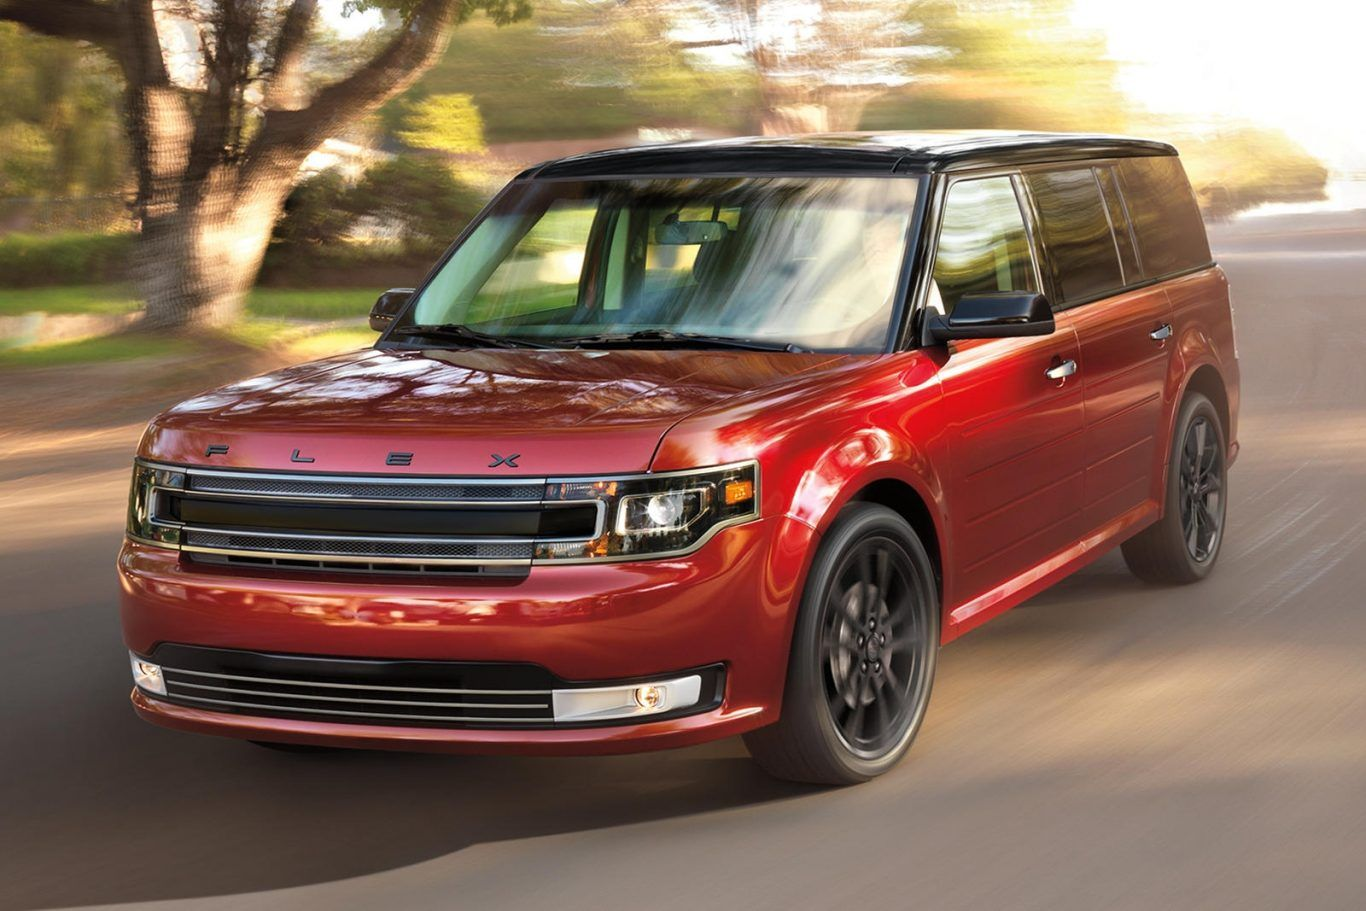 2020 Ford Flex Review, Price, Release Date, Trim Levels